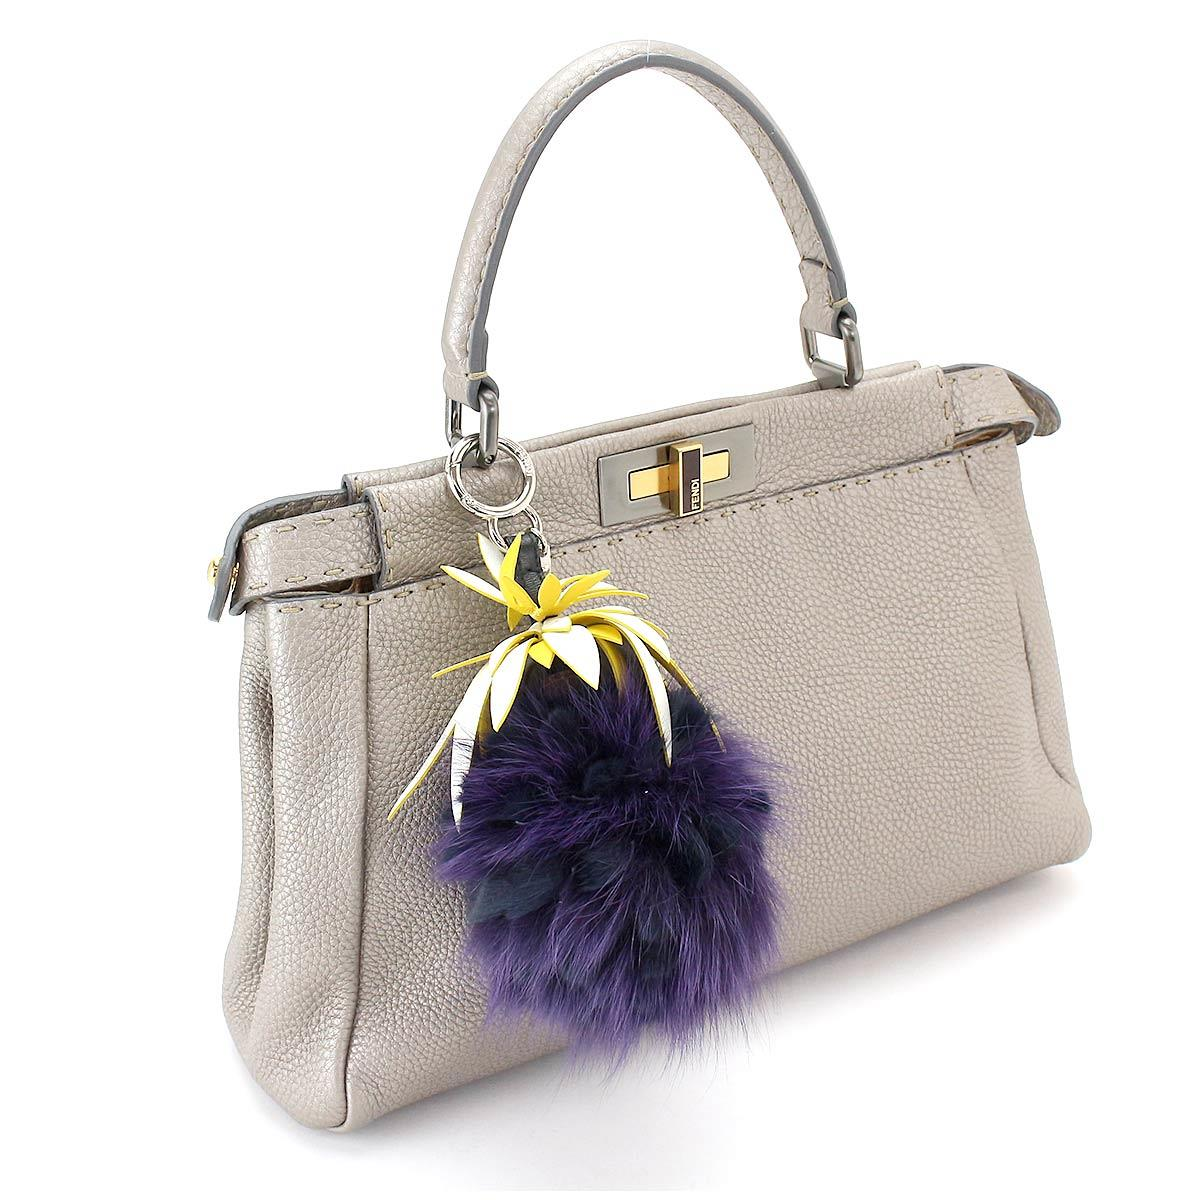 327224923114 Purpose Inc  Fendi FENDI bag charm pineapple Fox fur leather purple ...